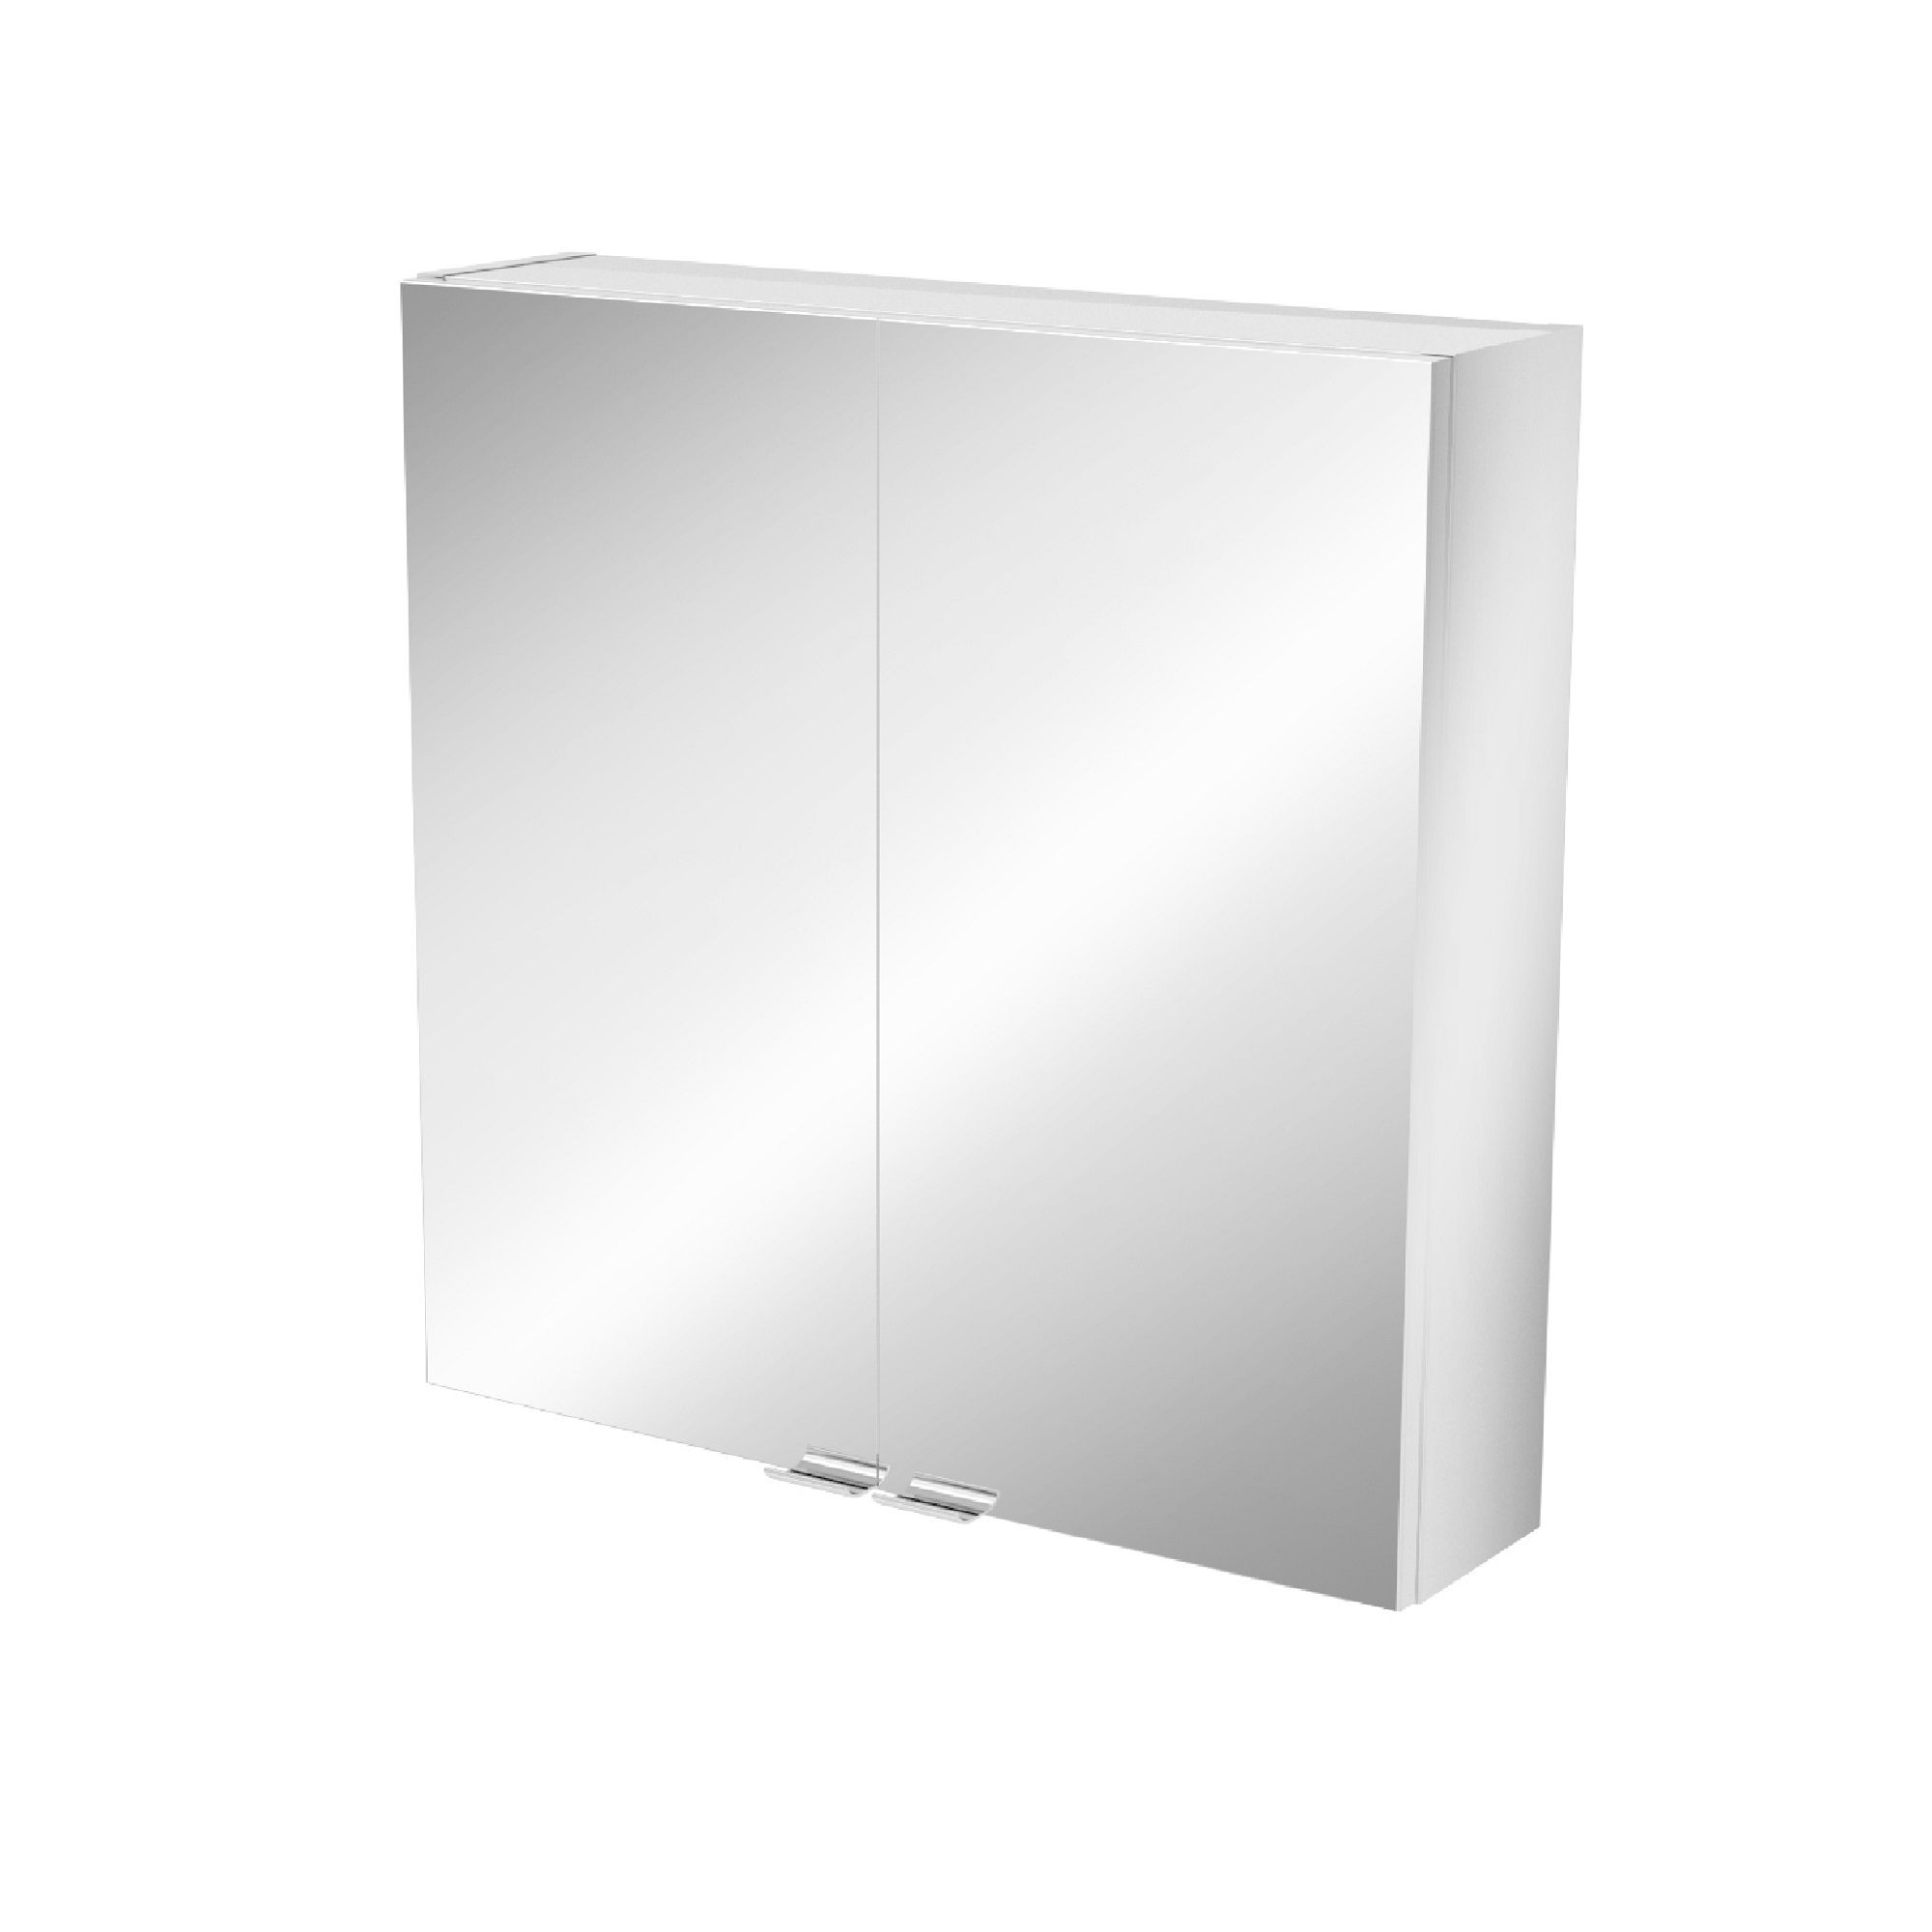 Cooke & Lewis Imandra Short Mirrored Wall Cabinet, (w)600mm